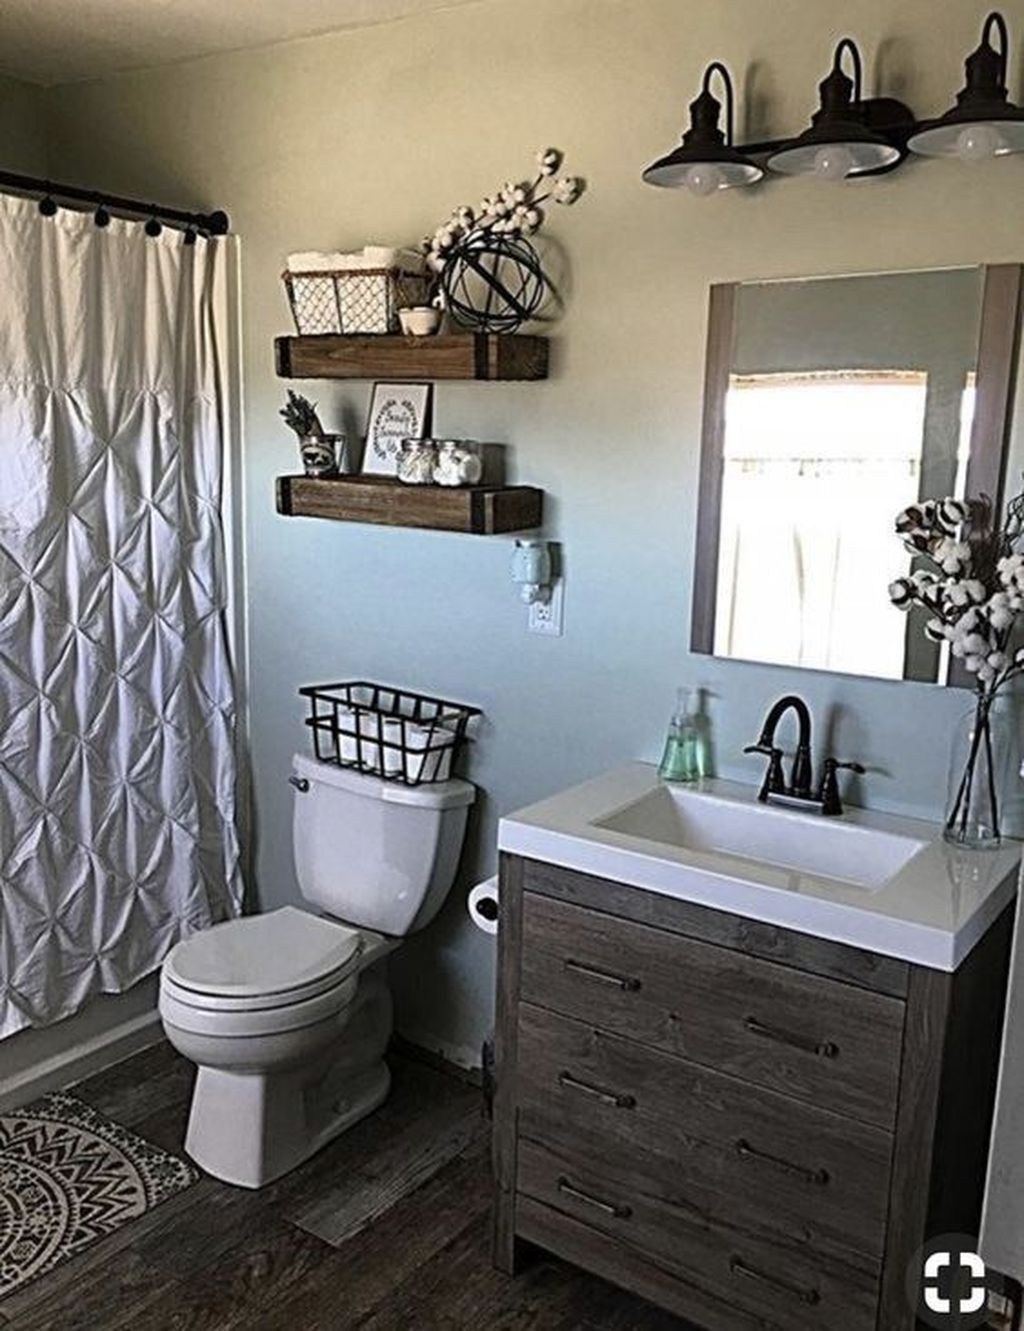 30 Splendid Small Bathroom Remodel Ideas For You Bathroom Makeovers On A Budget Small Master Bathroom Bathroom Design Small